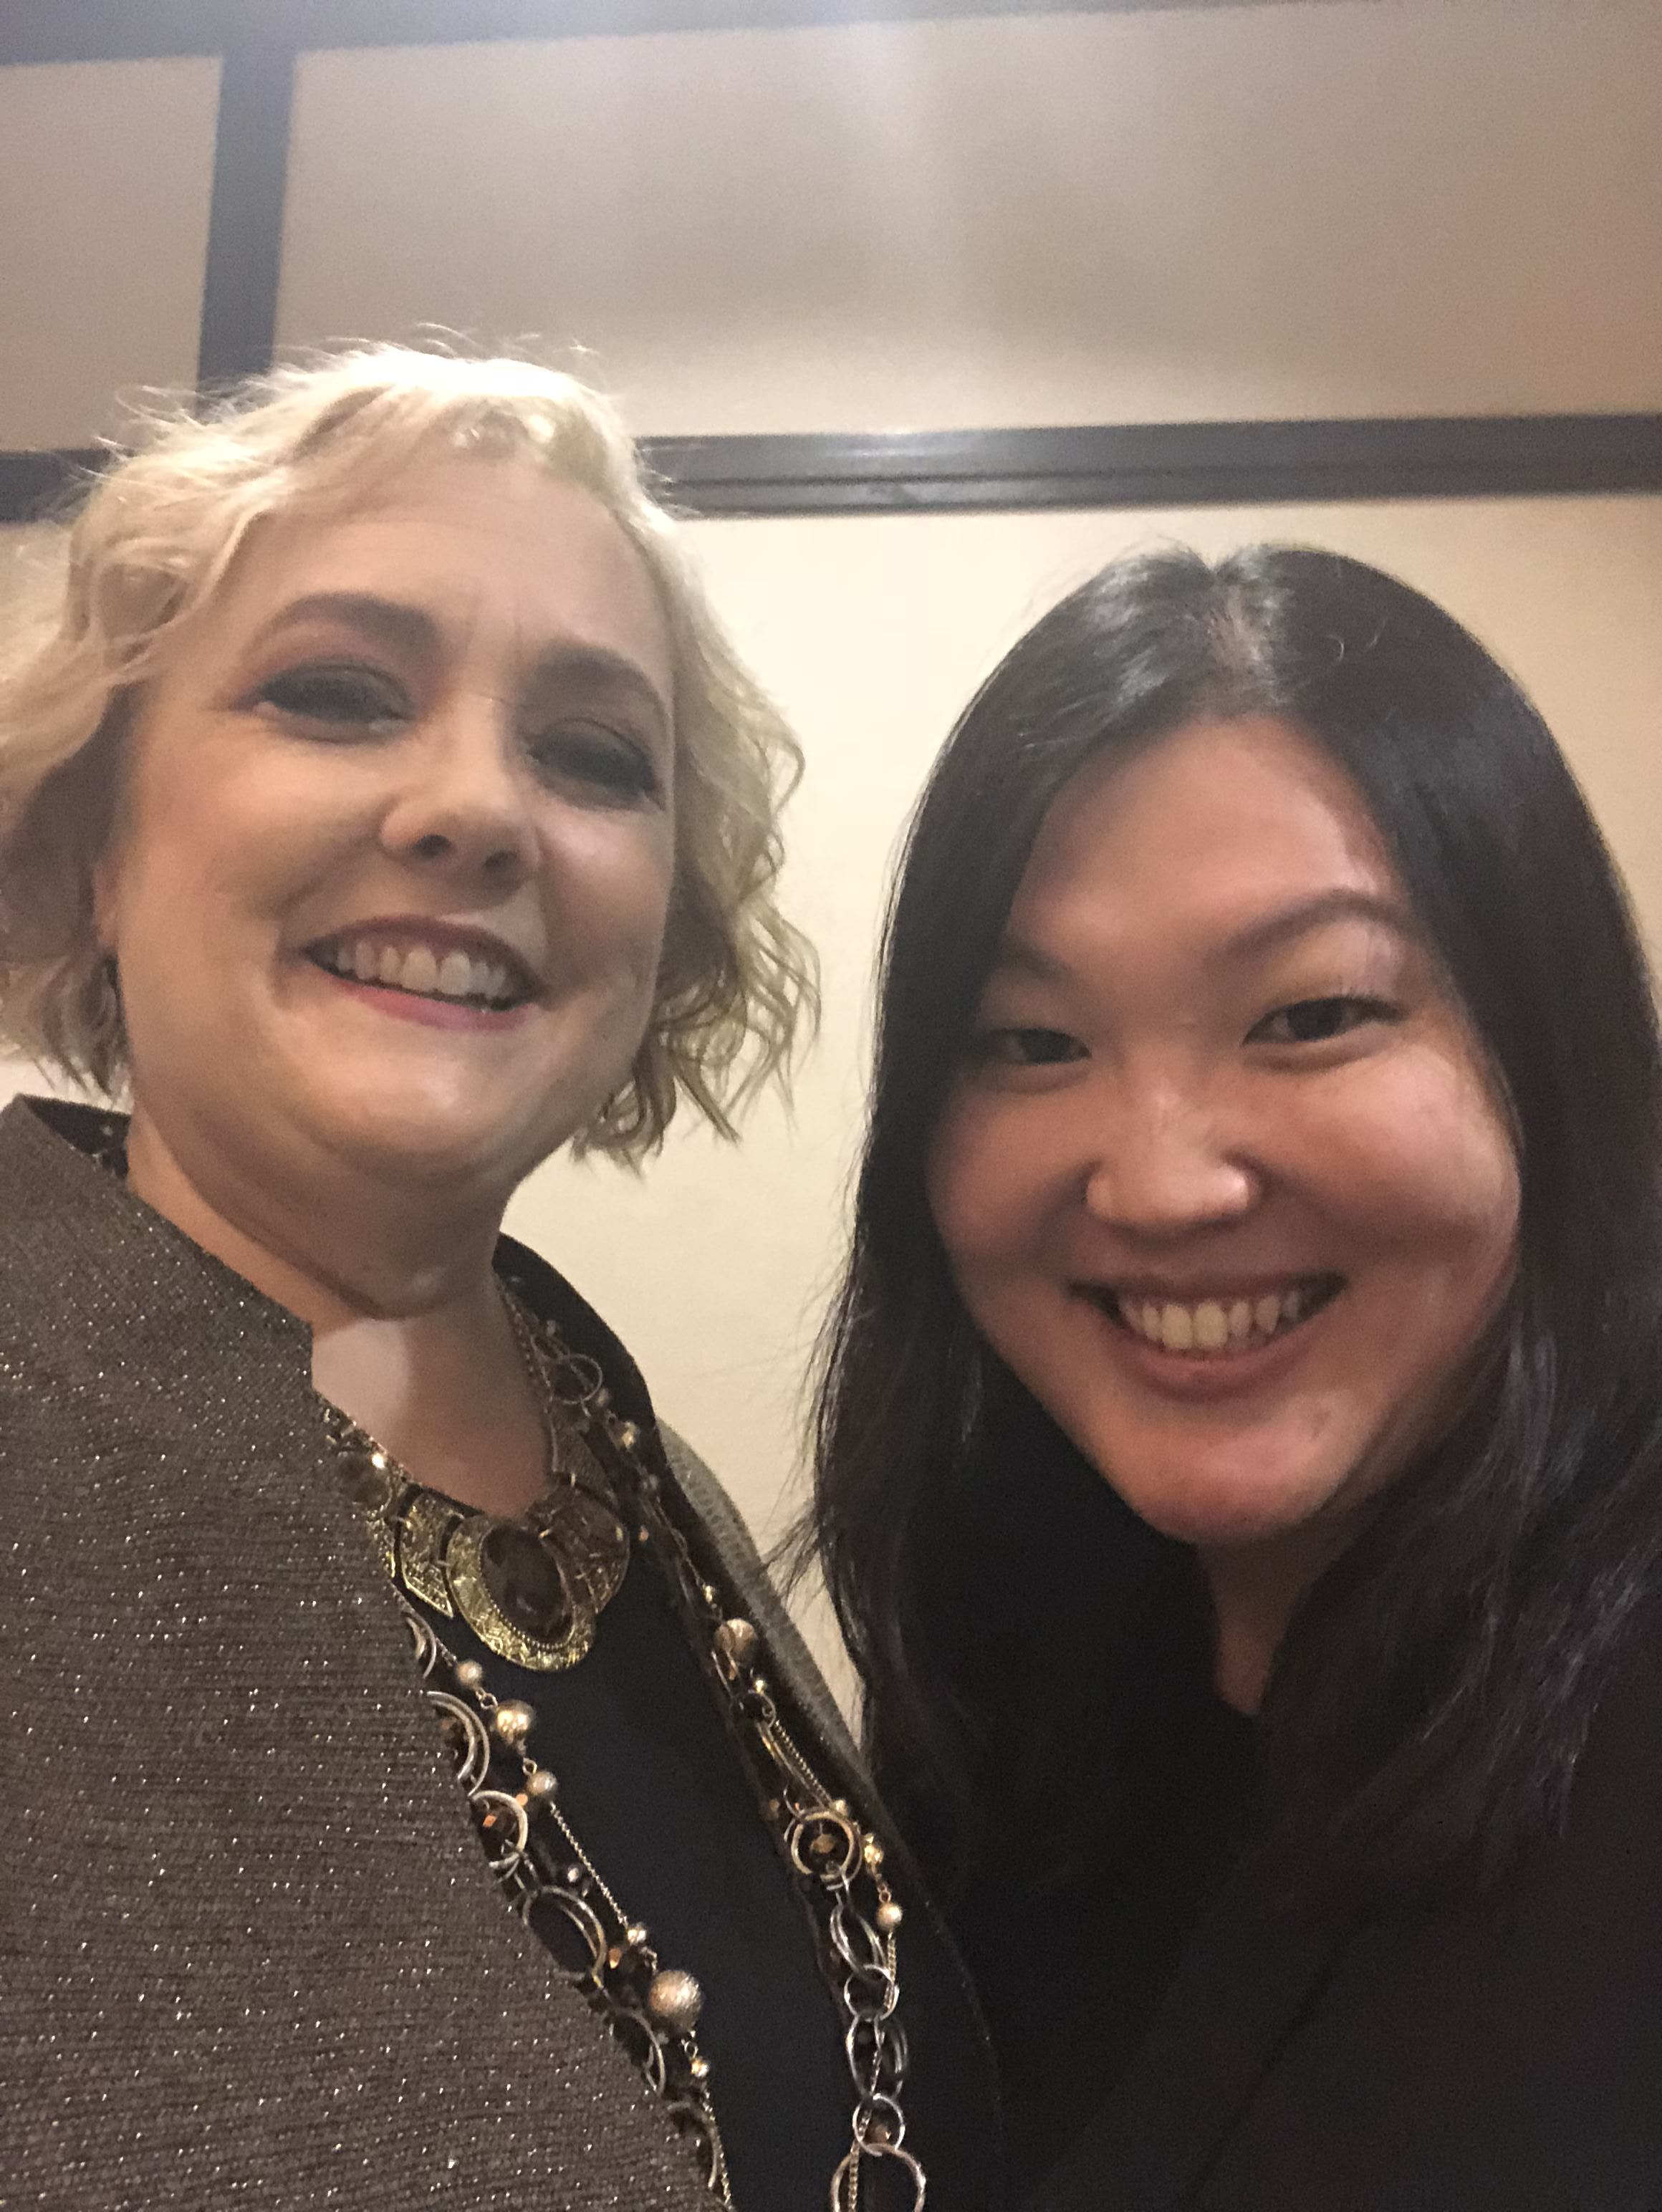 Bian Li with Michelle Berquist, founder of Connected Women of Influence, at the 2018 award ceremony in Orange County, California.